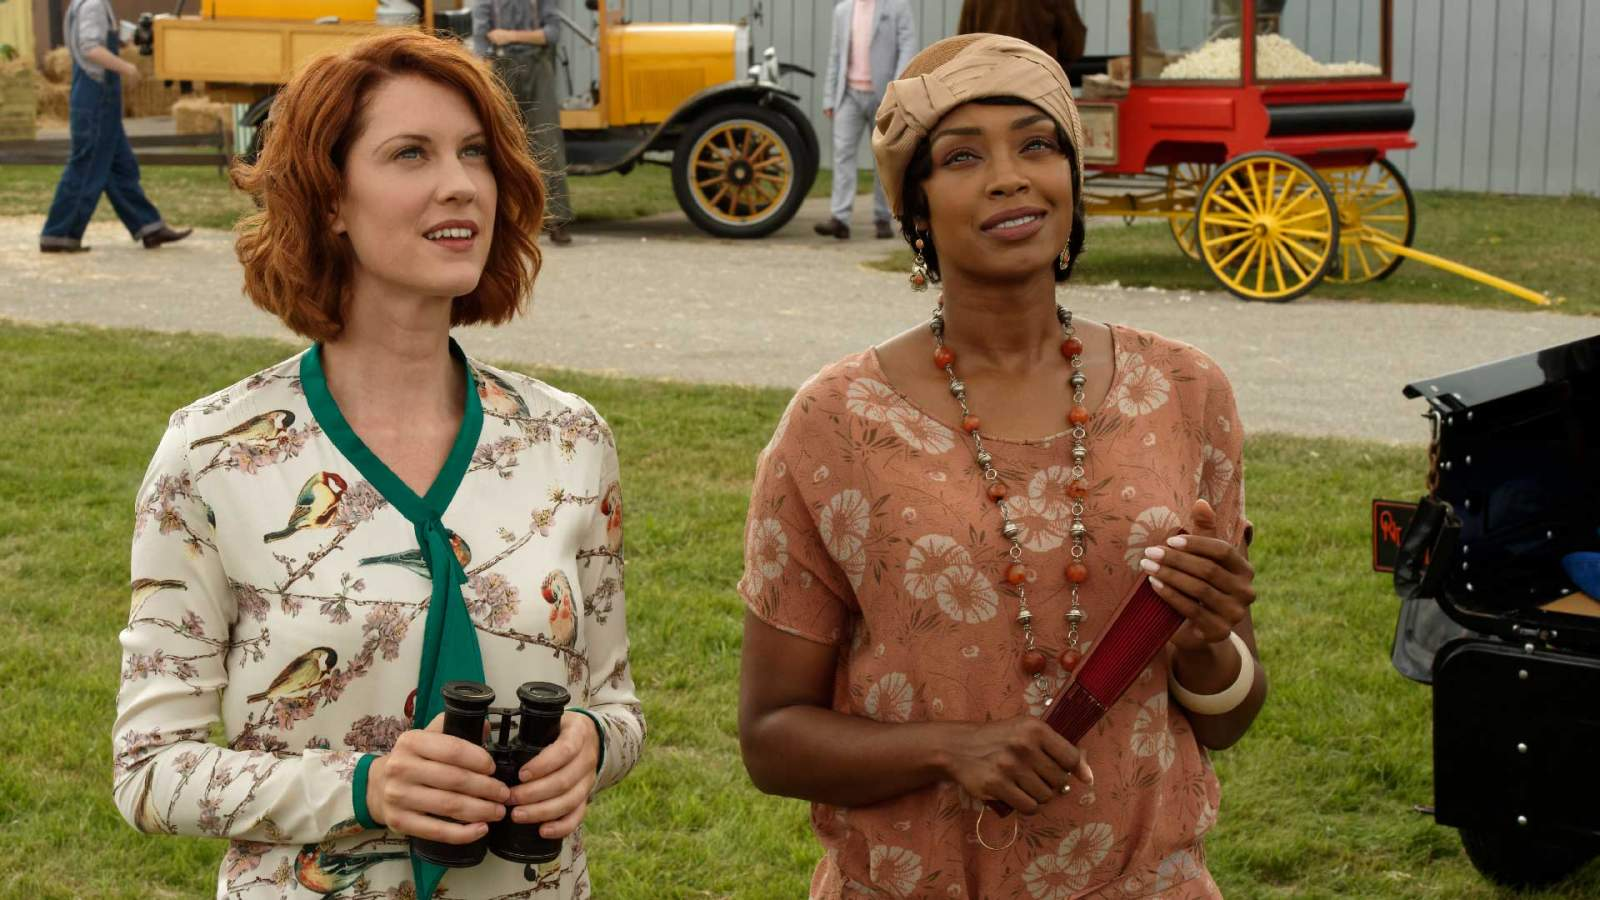 KEW MEDIA DISTRIBUTION'S FRANKIE DRAKE MYSTERIES ACQUIRED BY OVATION IN  U.S. AS NEW SECOND SEASON LAUNCHES